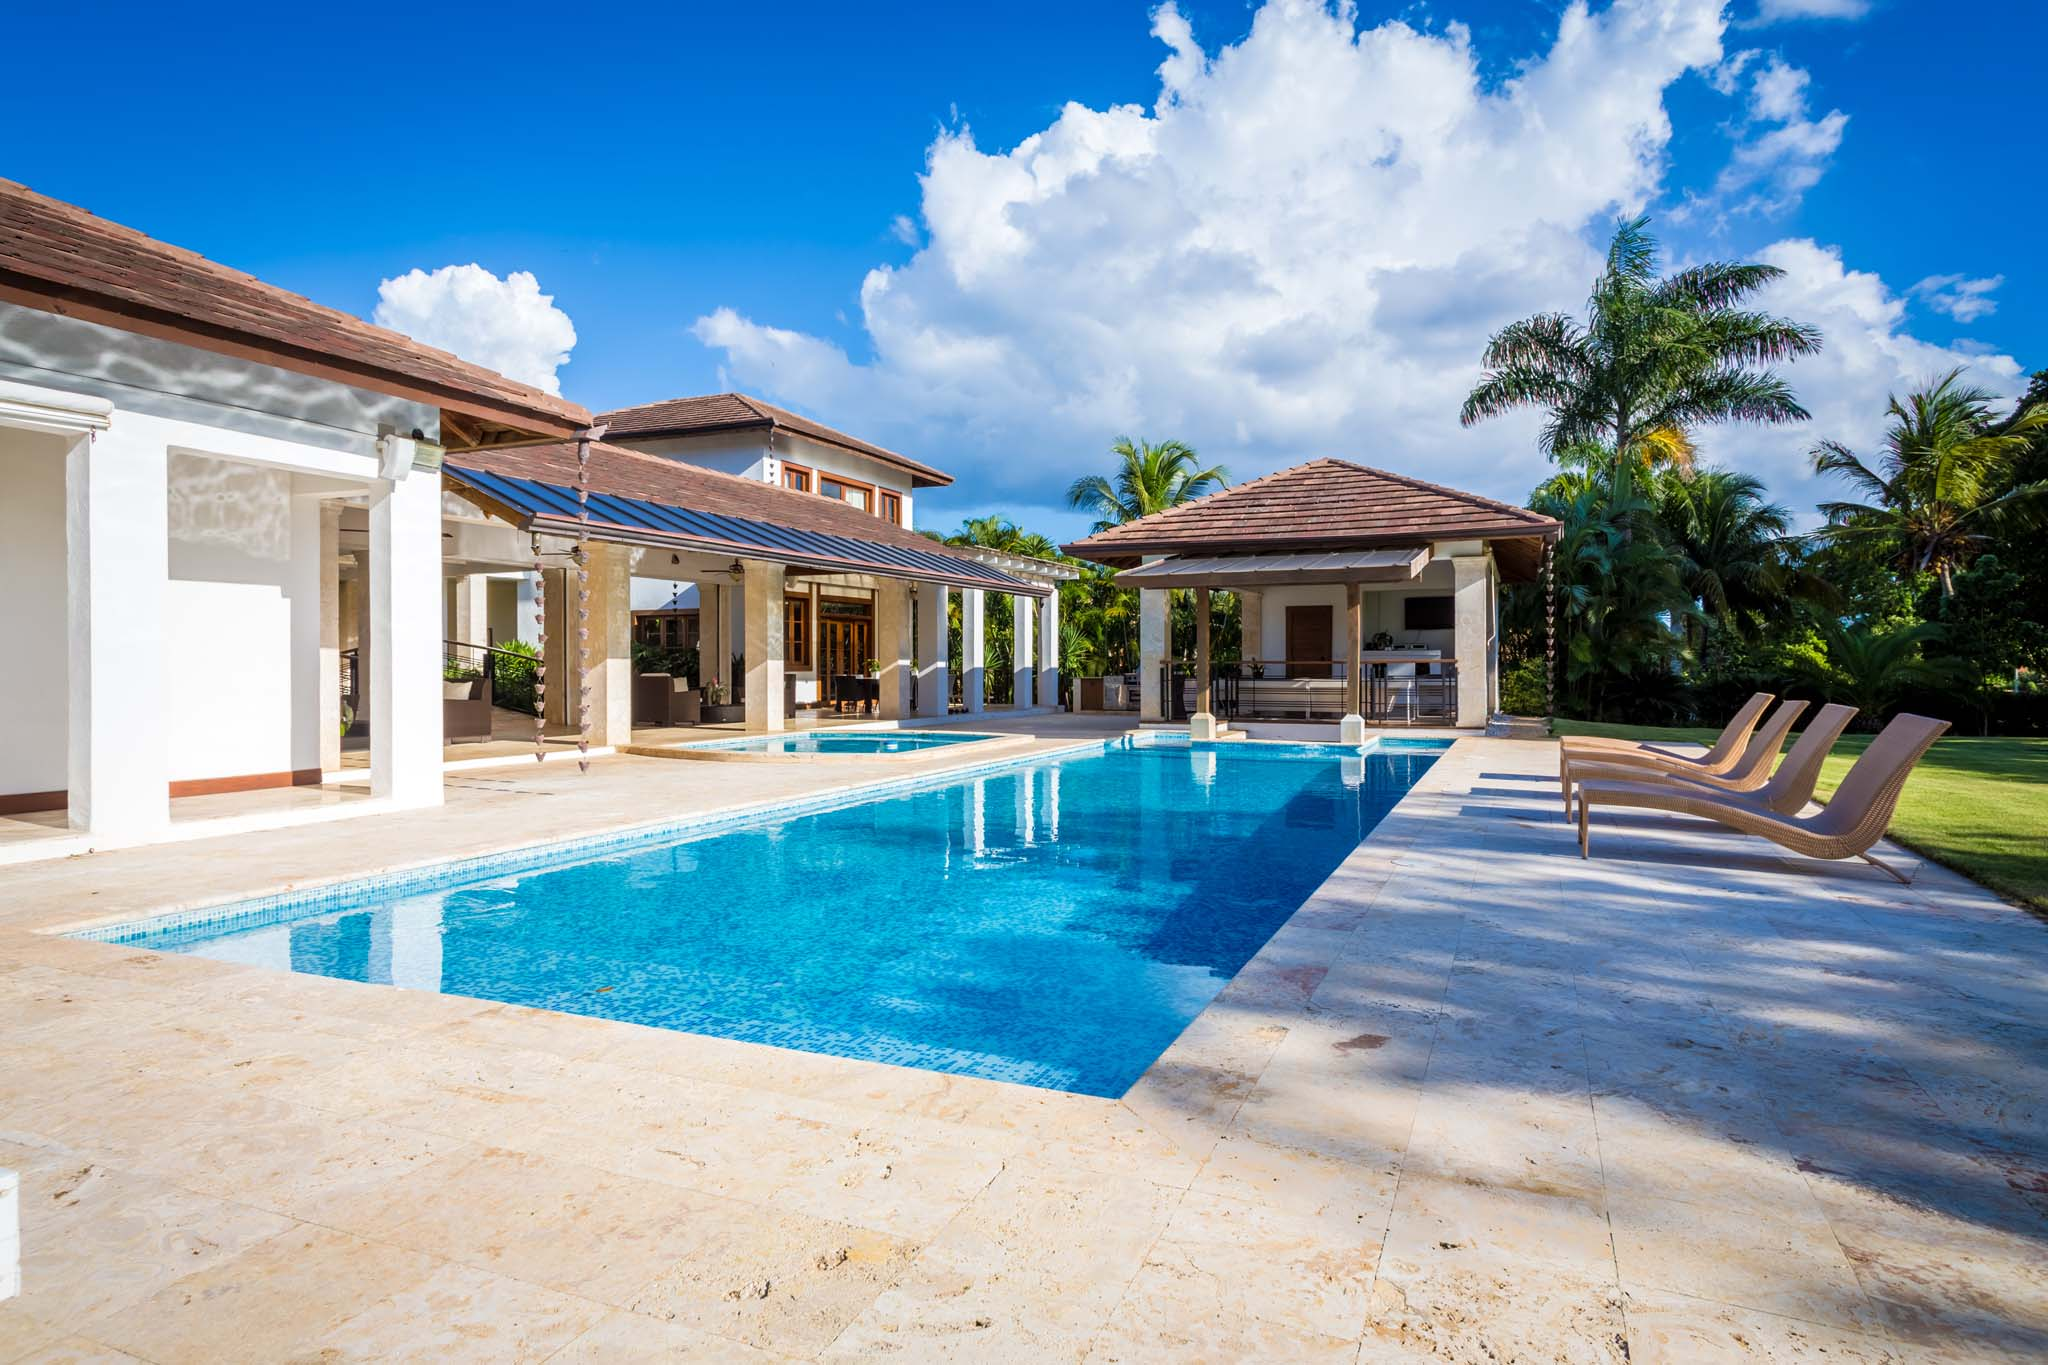 Single Family Home for Sale at A Tropical-Modern Mansion with Vibrant Golf View designed for a family of 20 Casa De Campo, La Romana, Dominican Republic